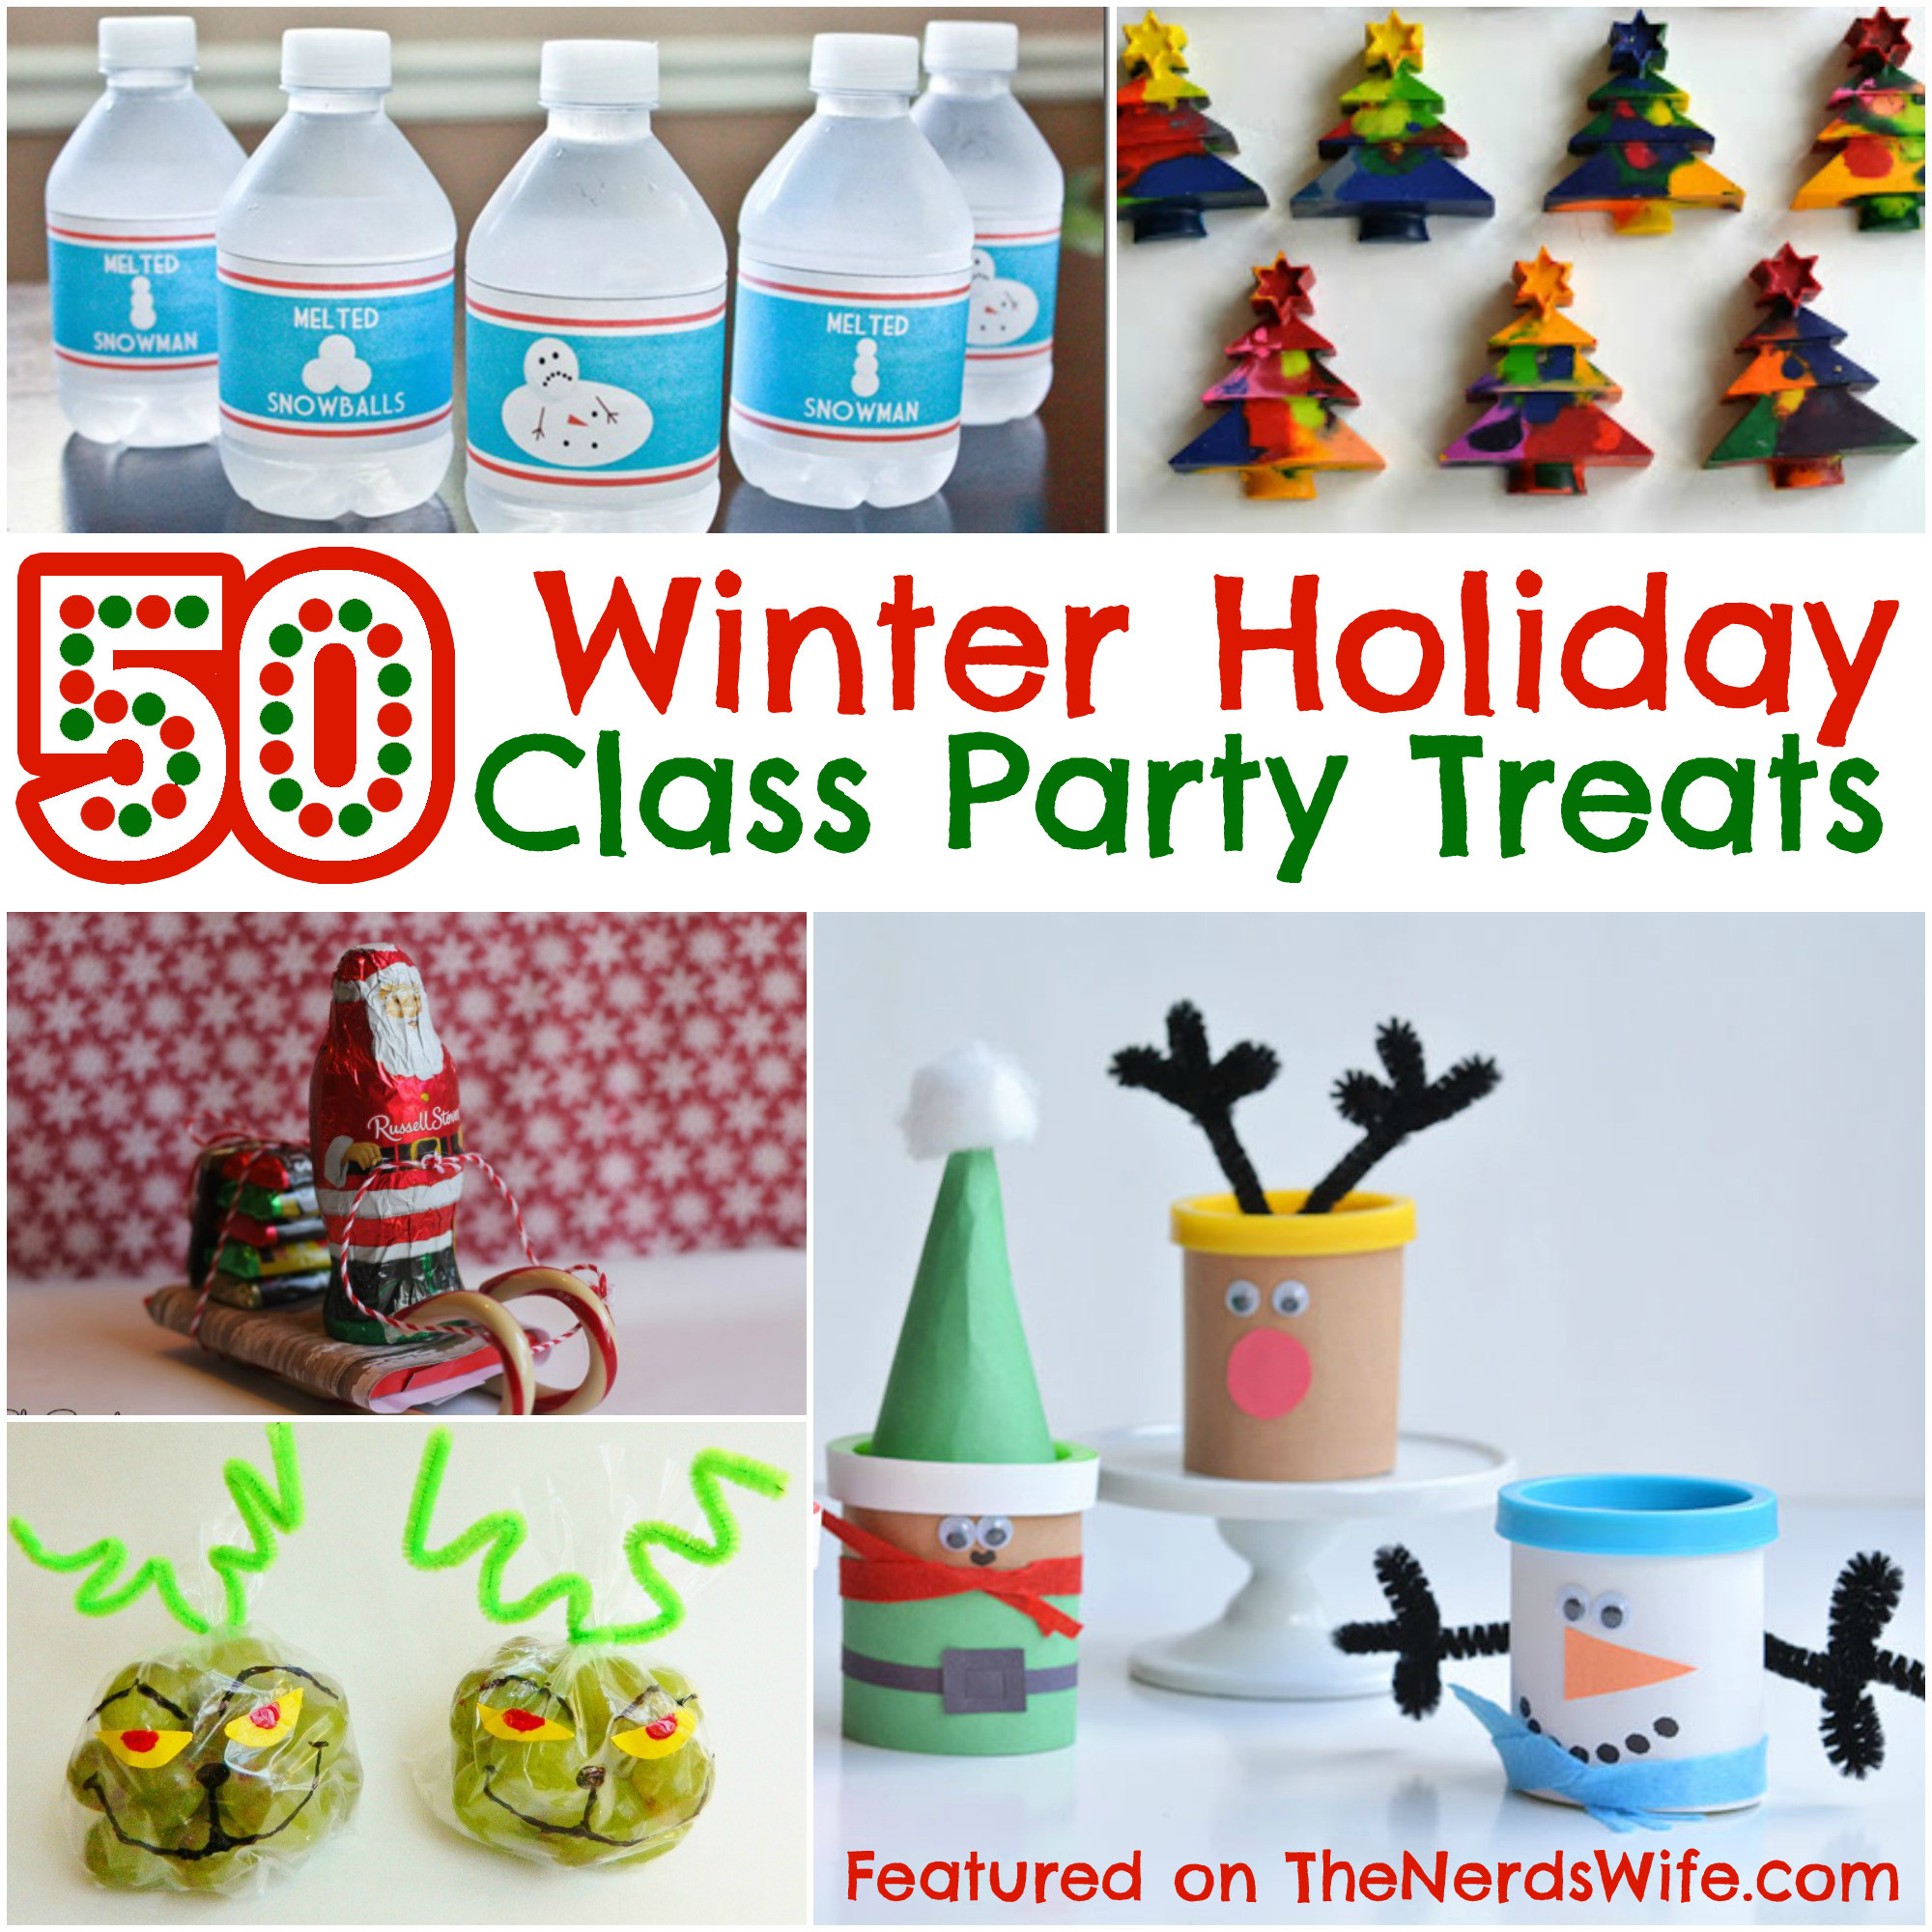 Christmas Class Party Ideas  50 Winter Holiday Class Party Treats